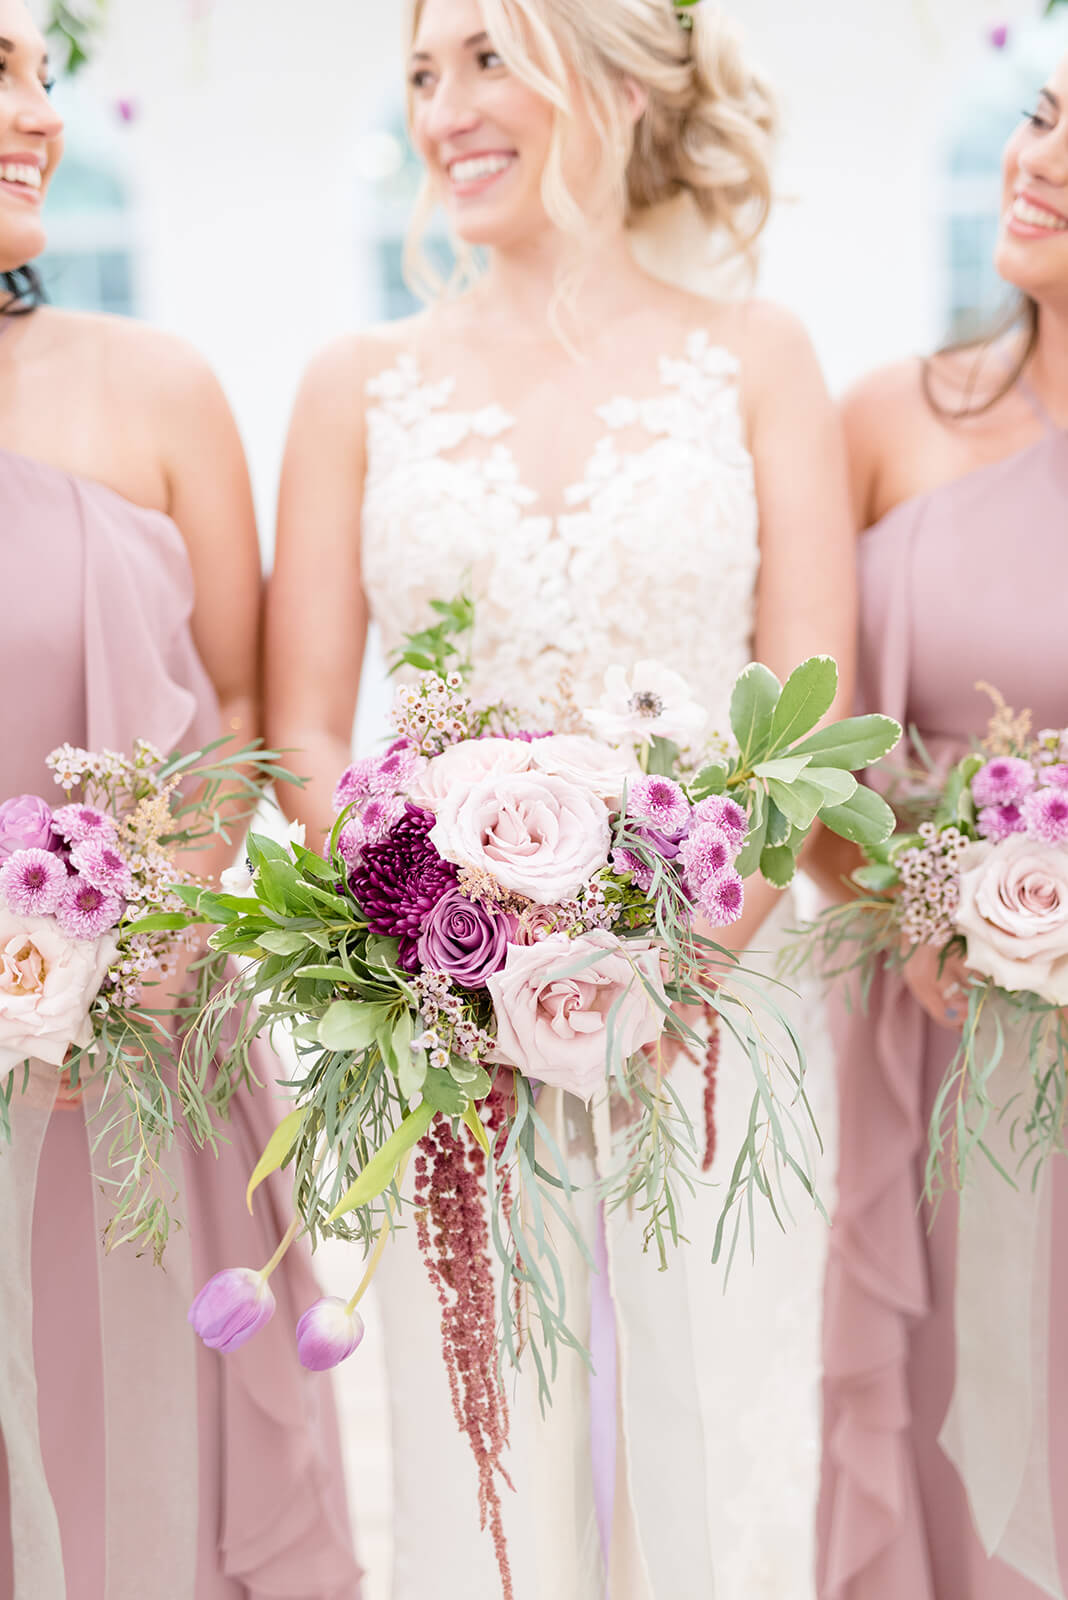 bridal bouquets with purples, pinks and neutrals